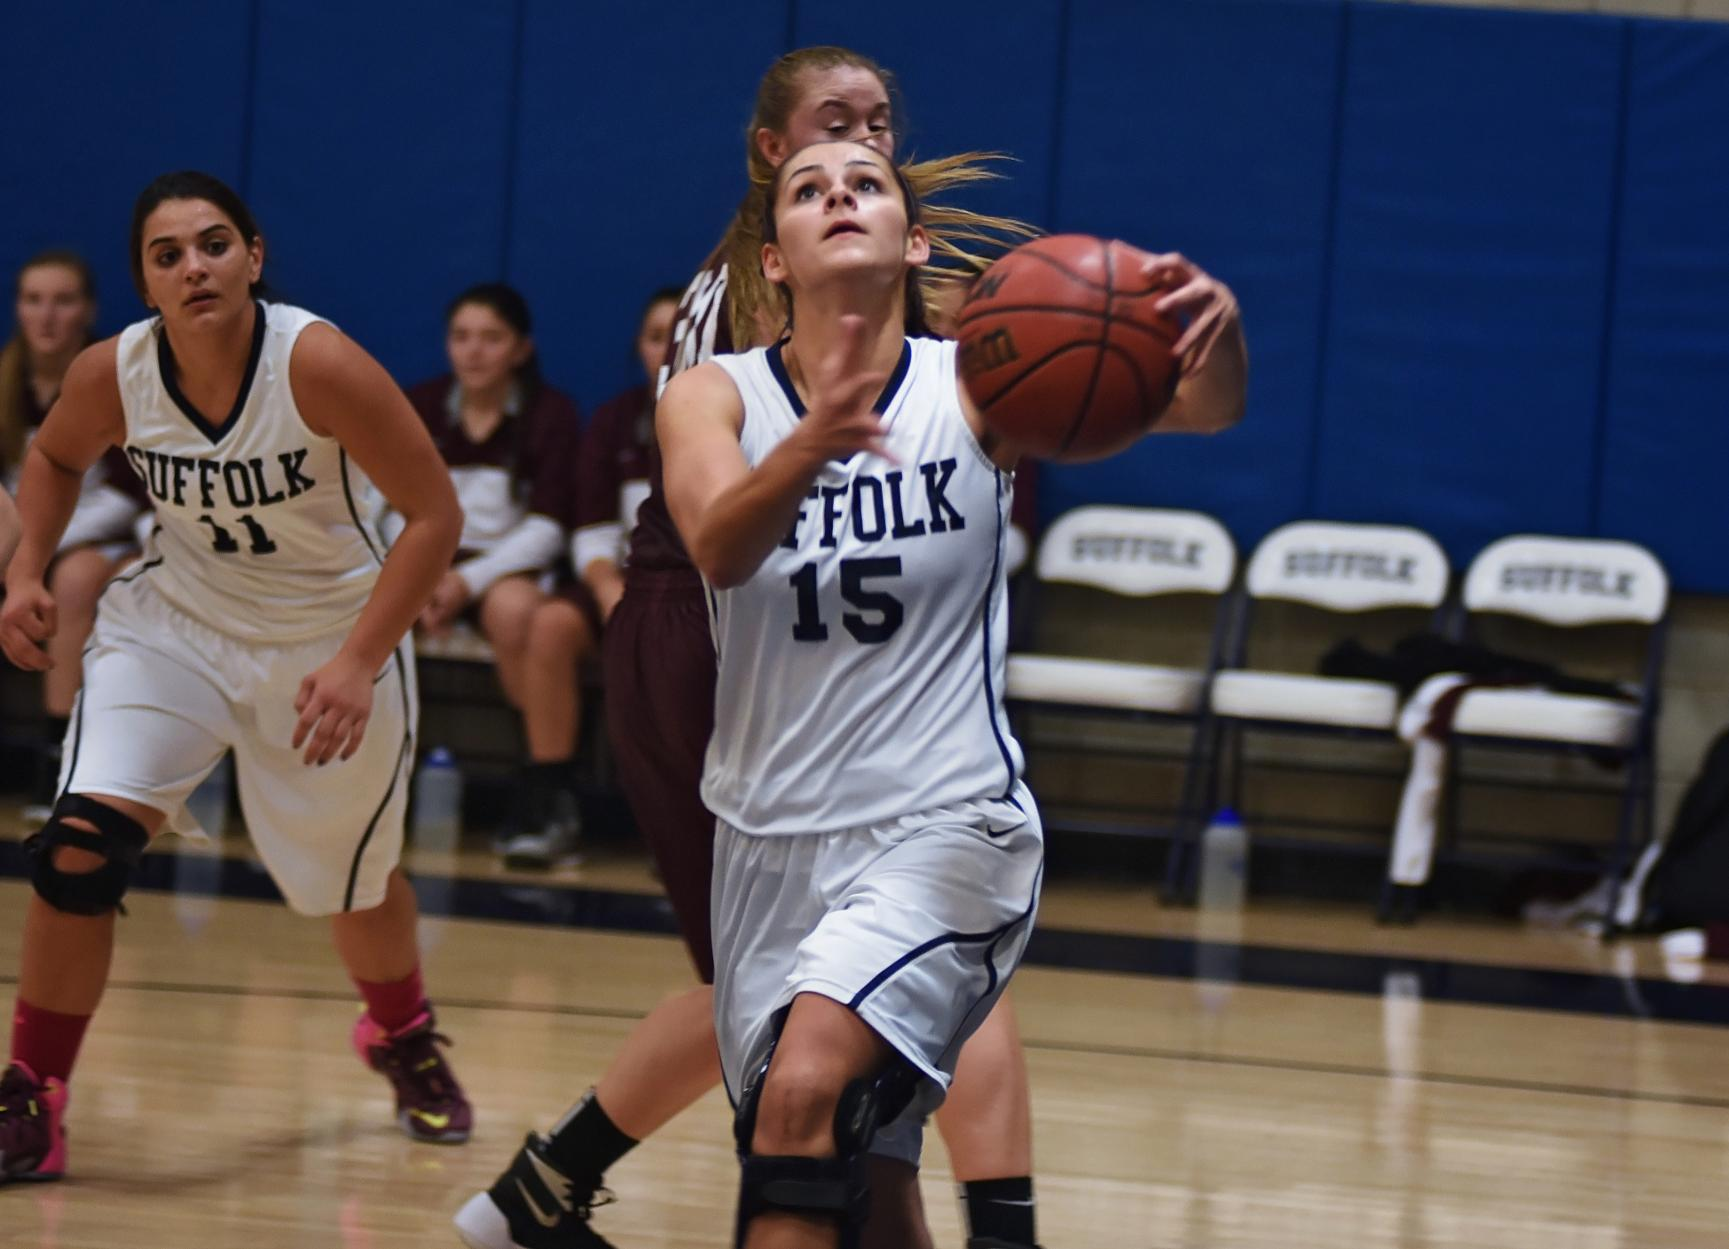 Women's Basketball Races to Fifth Straight Win, Downs Mt. Ida, 80-68